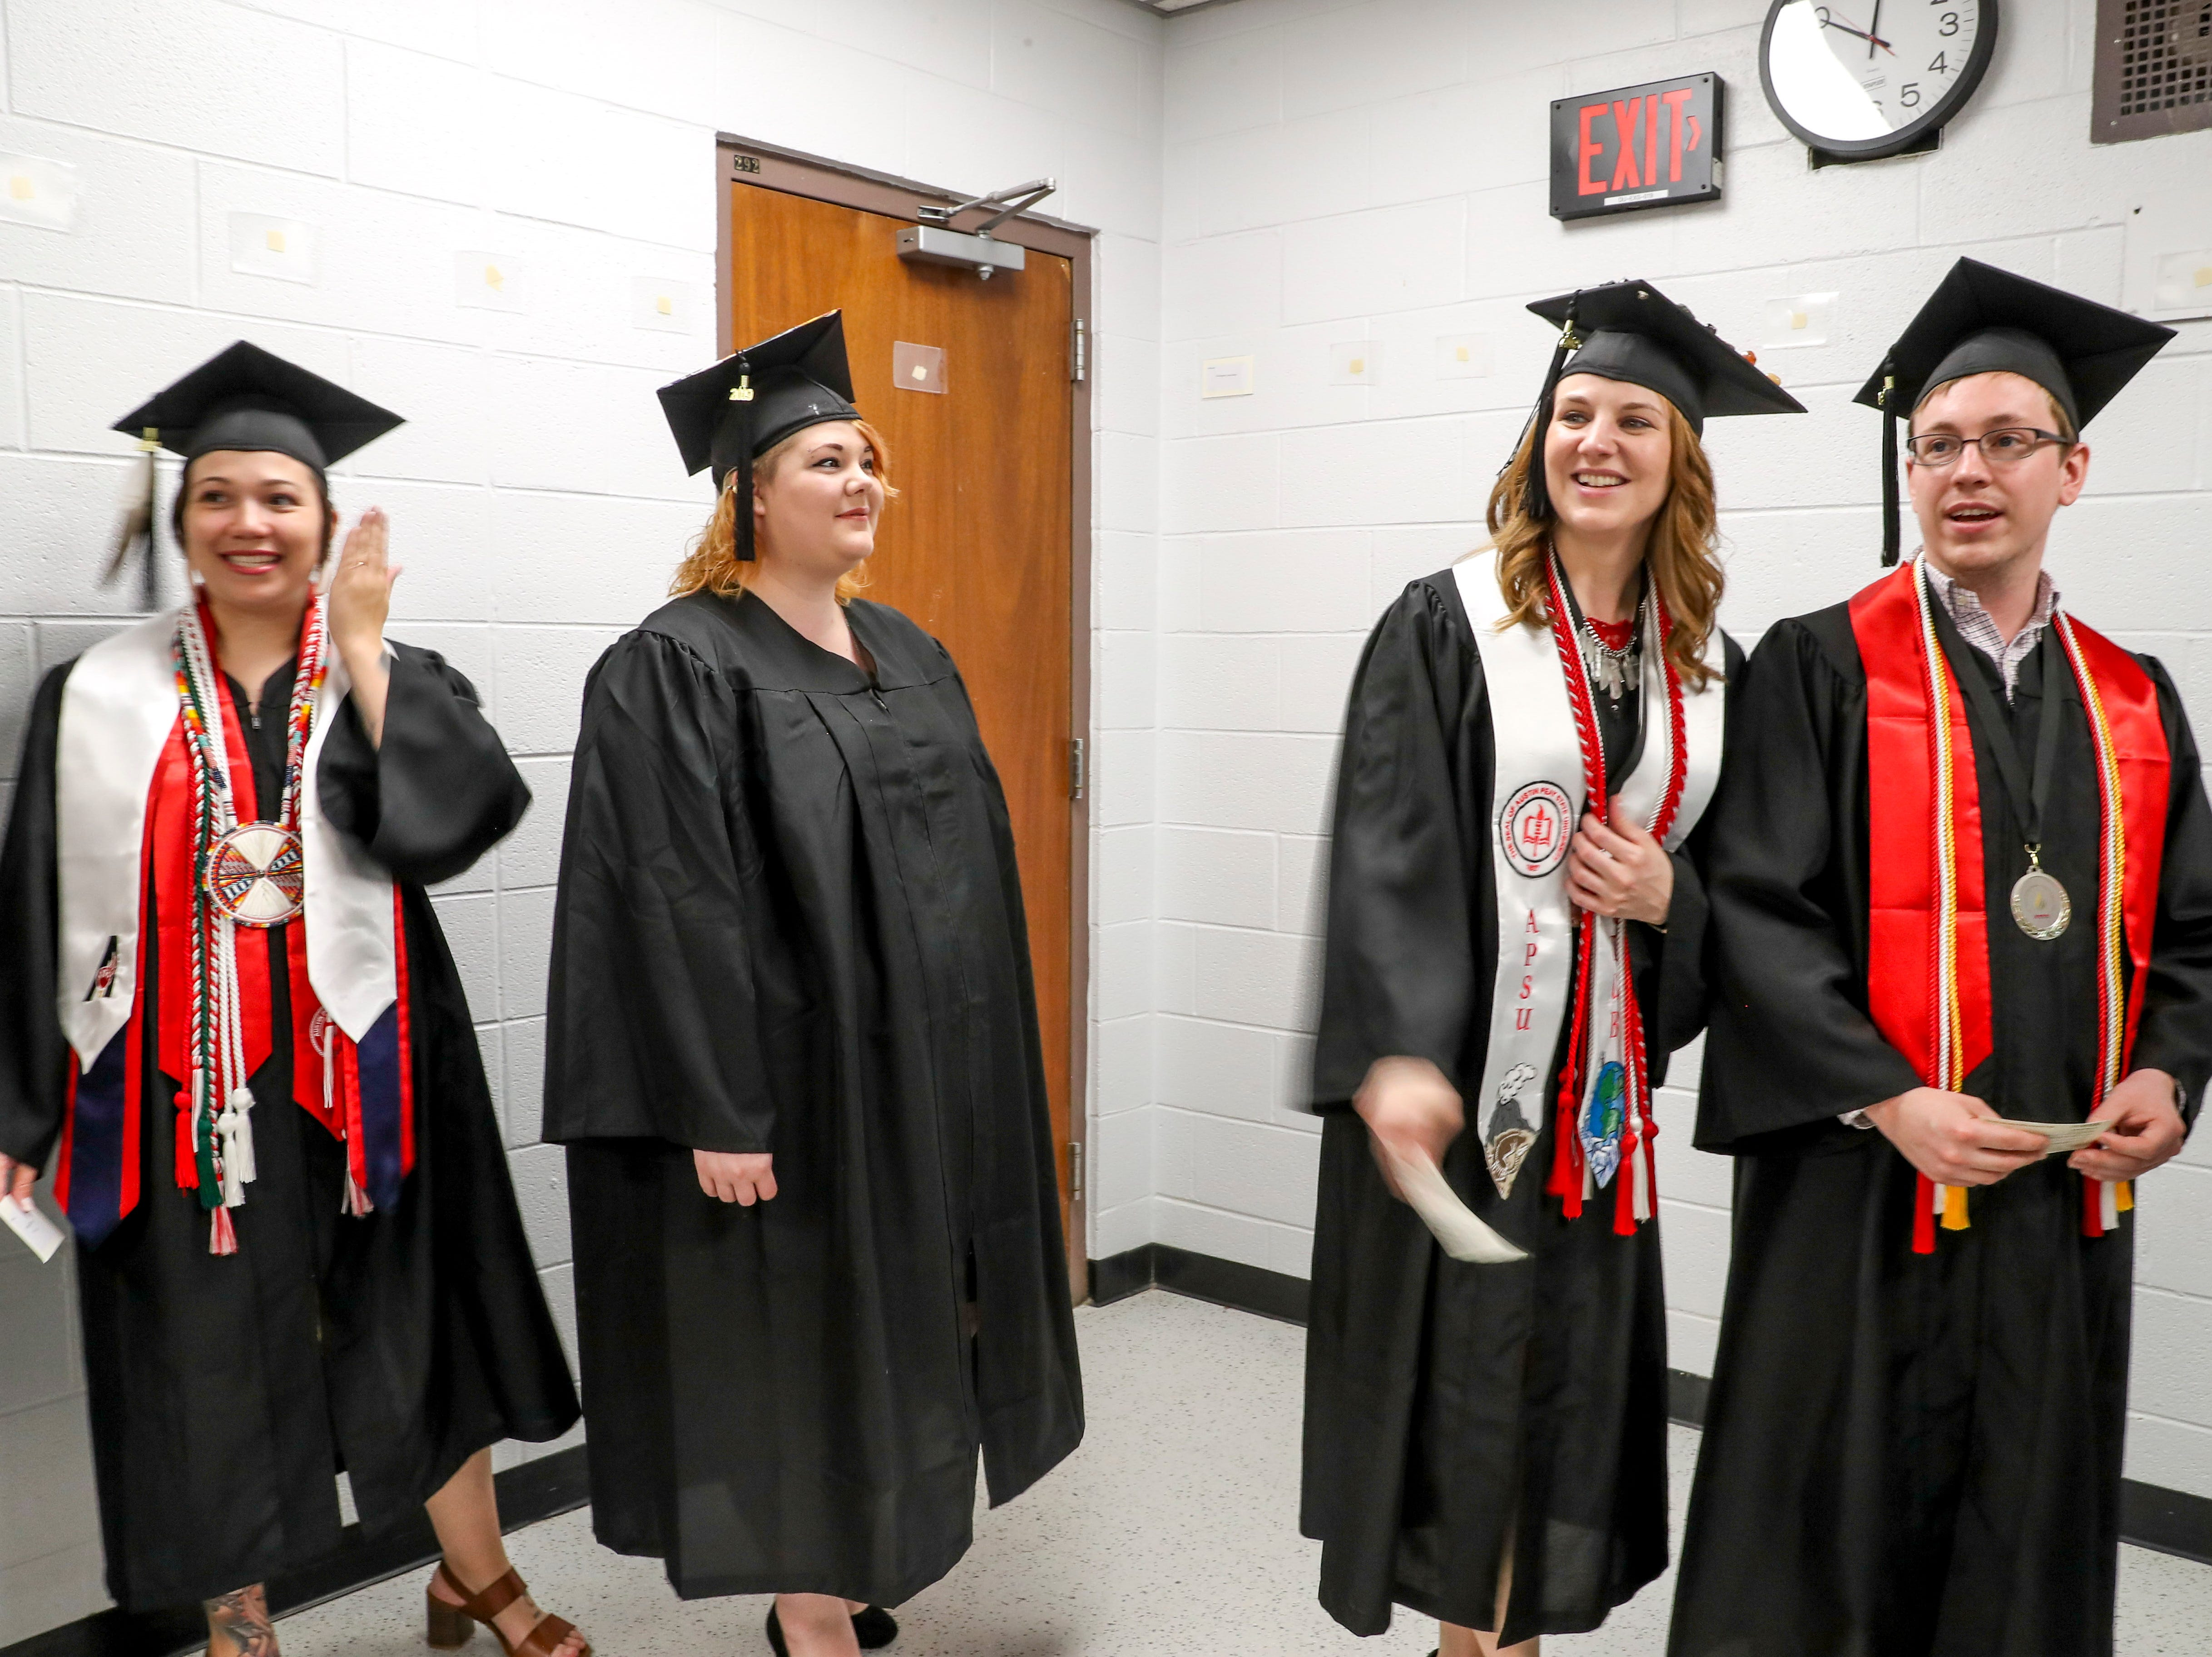 Students look down the hallway towards their fellow graduates at the Austin Peay spring commencement ceremony 2019 for College of Business and College of STEM at Winfield Dunn Center in Clarksville, Tenn., on Friday, May 3, 2019.